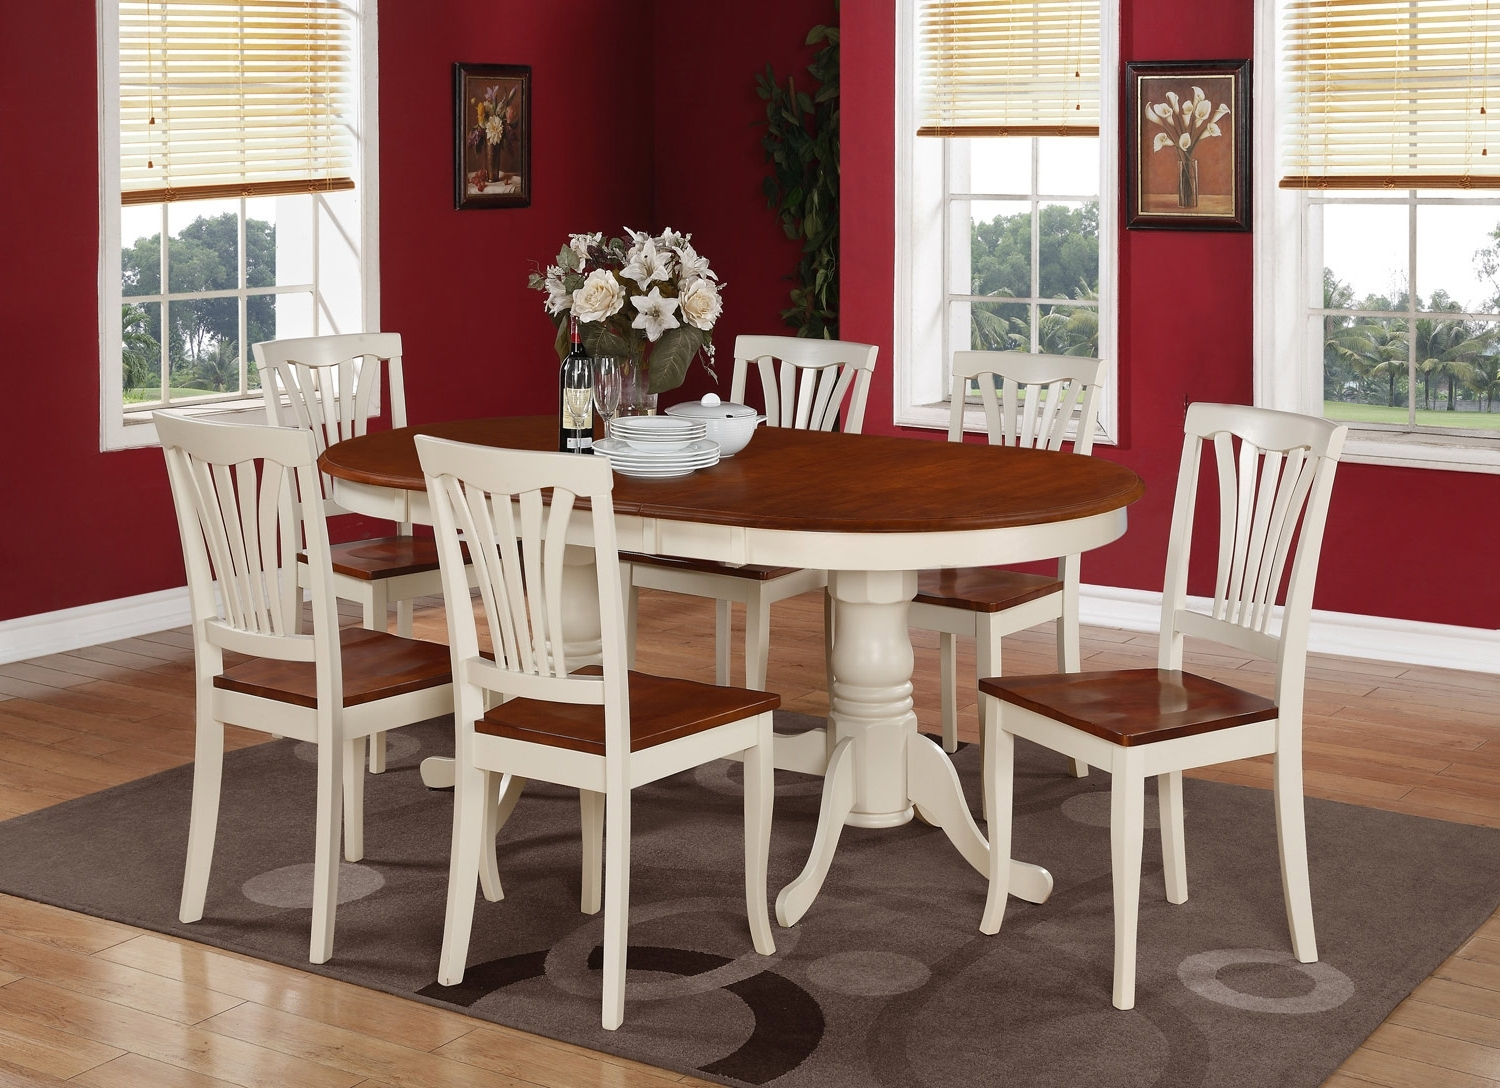 Latest 9Pc Oval Dining Room Table 8 Chairs Self Storage Leaf Buttermilk Finish In Dining Tables 8 Chairs Set (View 14 of 25)